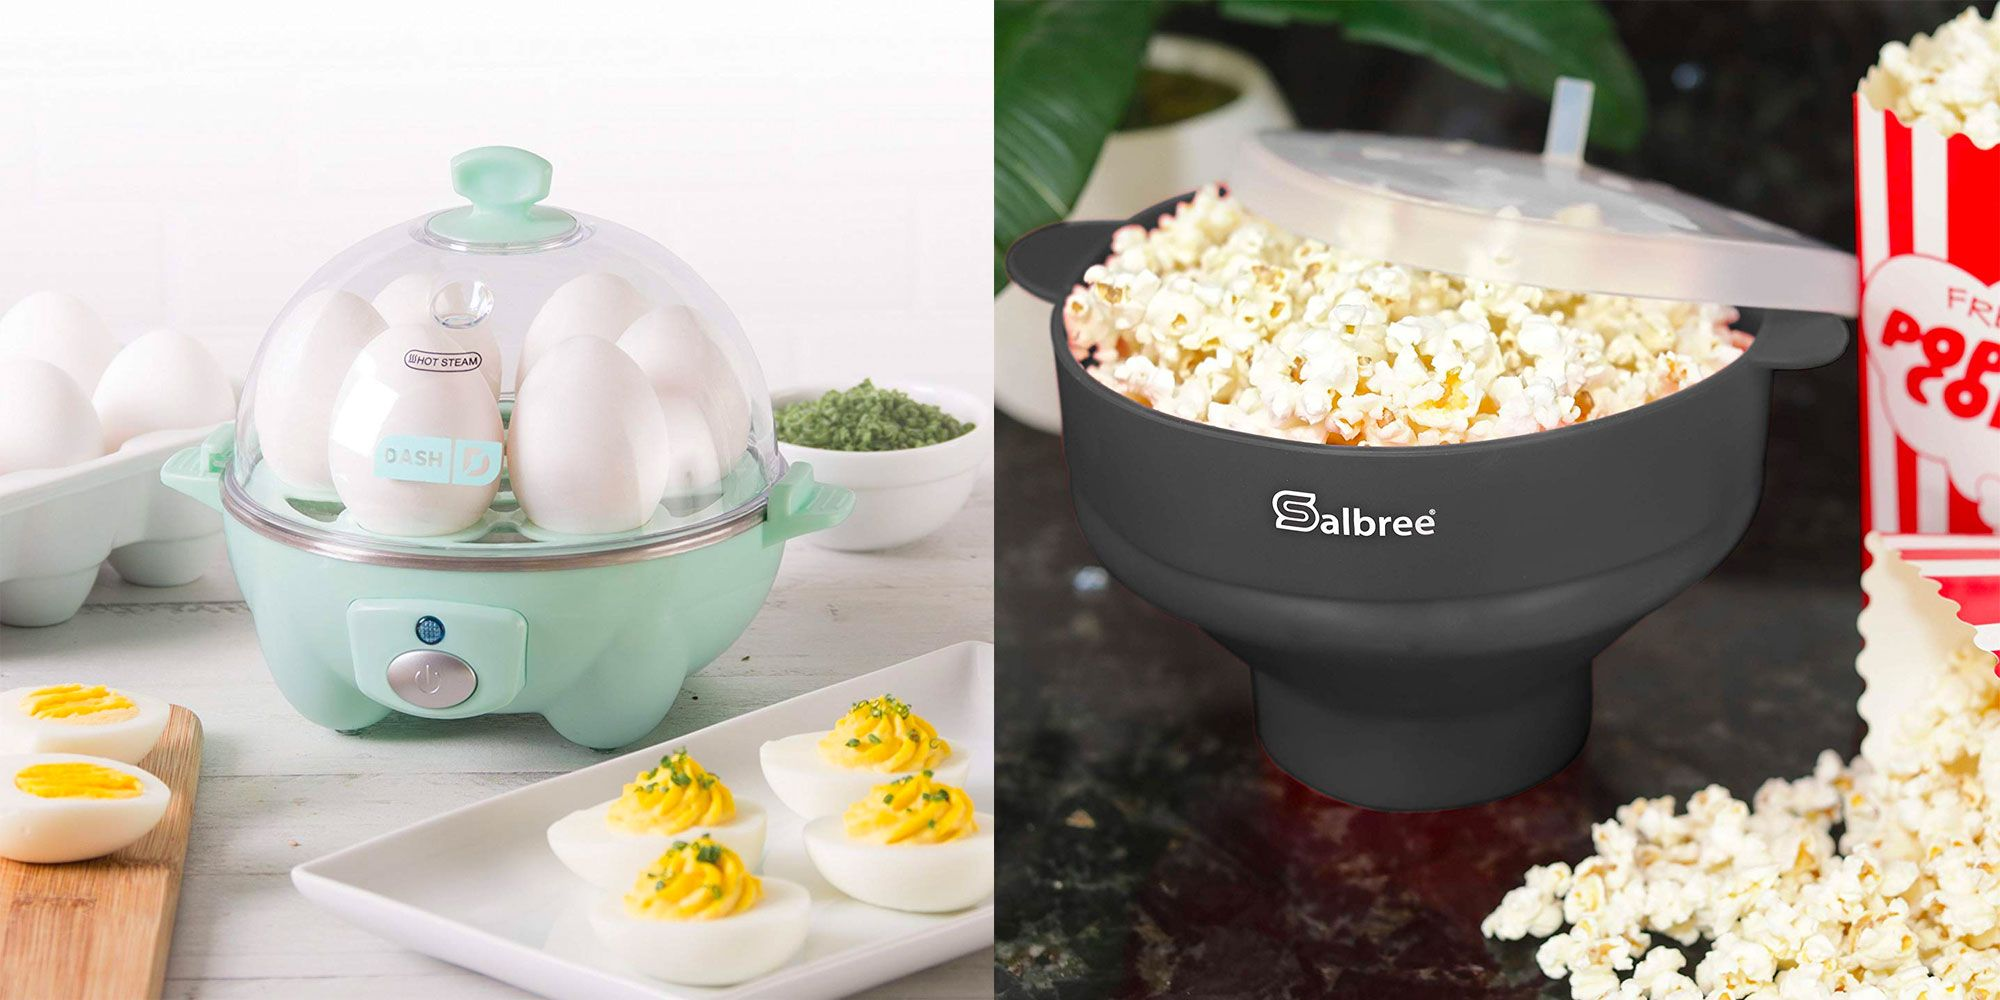 The 40 Best-Selling Kitchen Products on Amazon Right Now